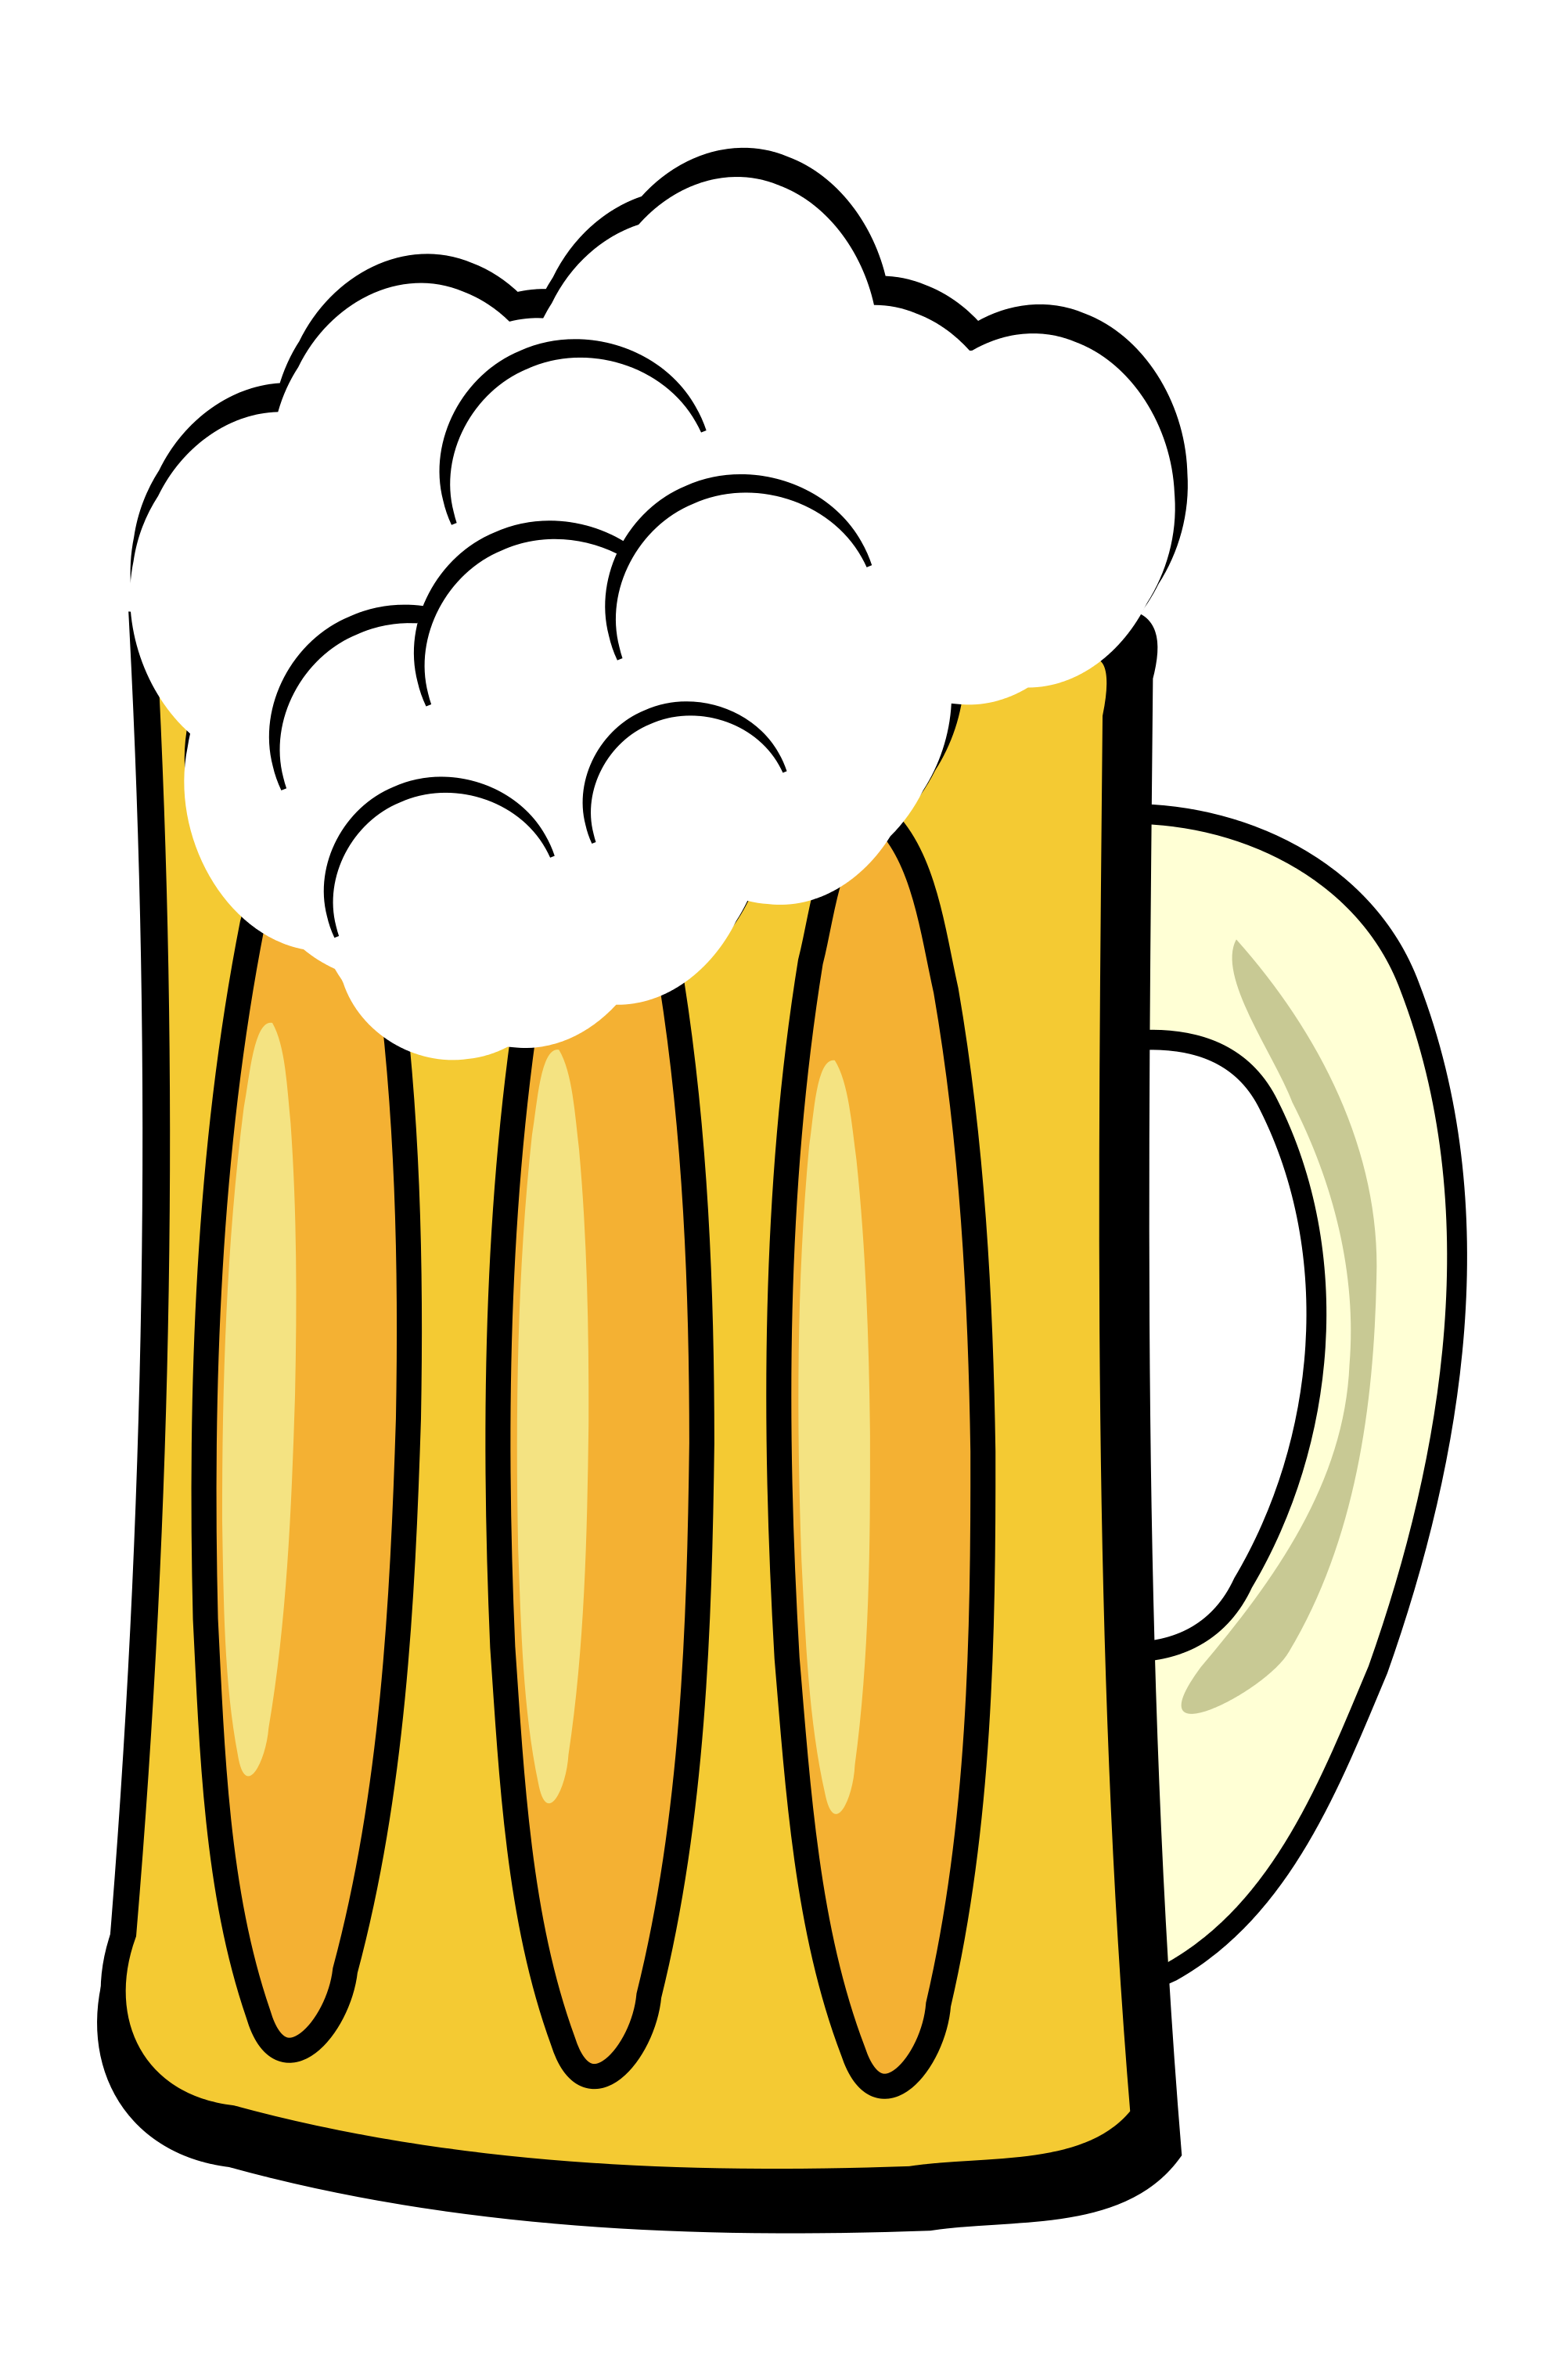 Mug clipart one object. File frosty beer svg